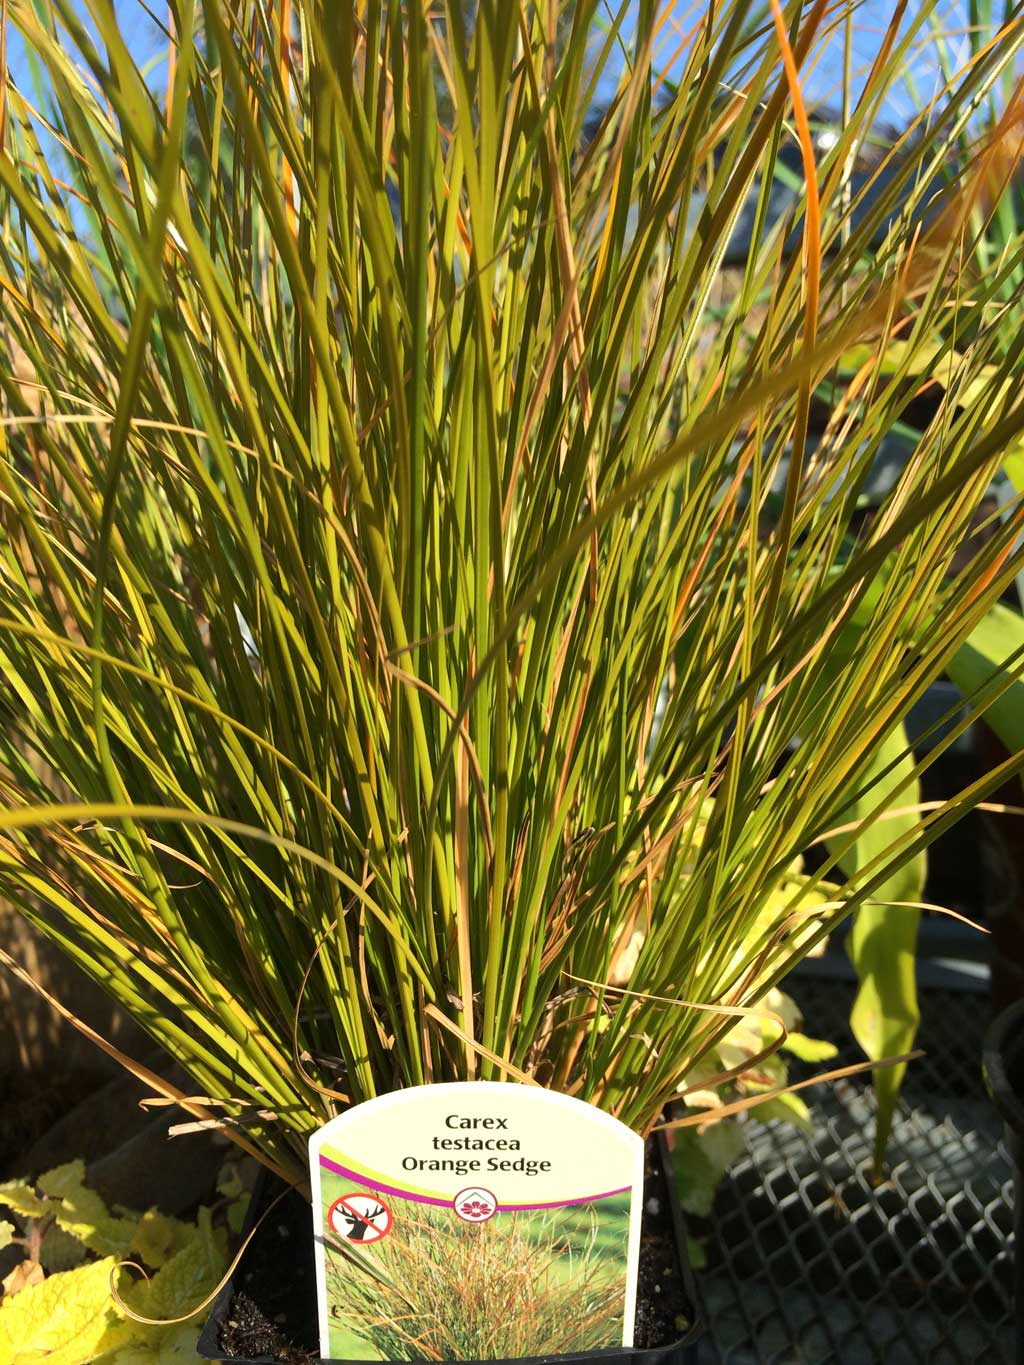 Carex Orange Sedge